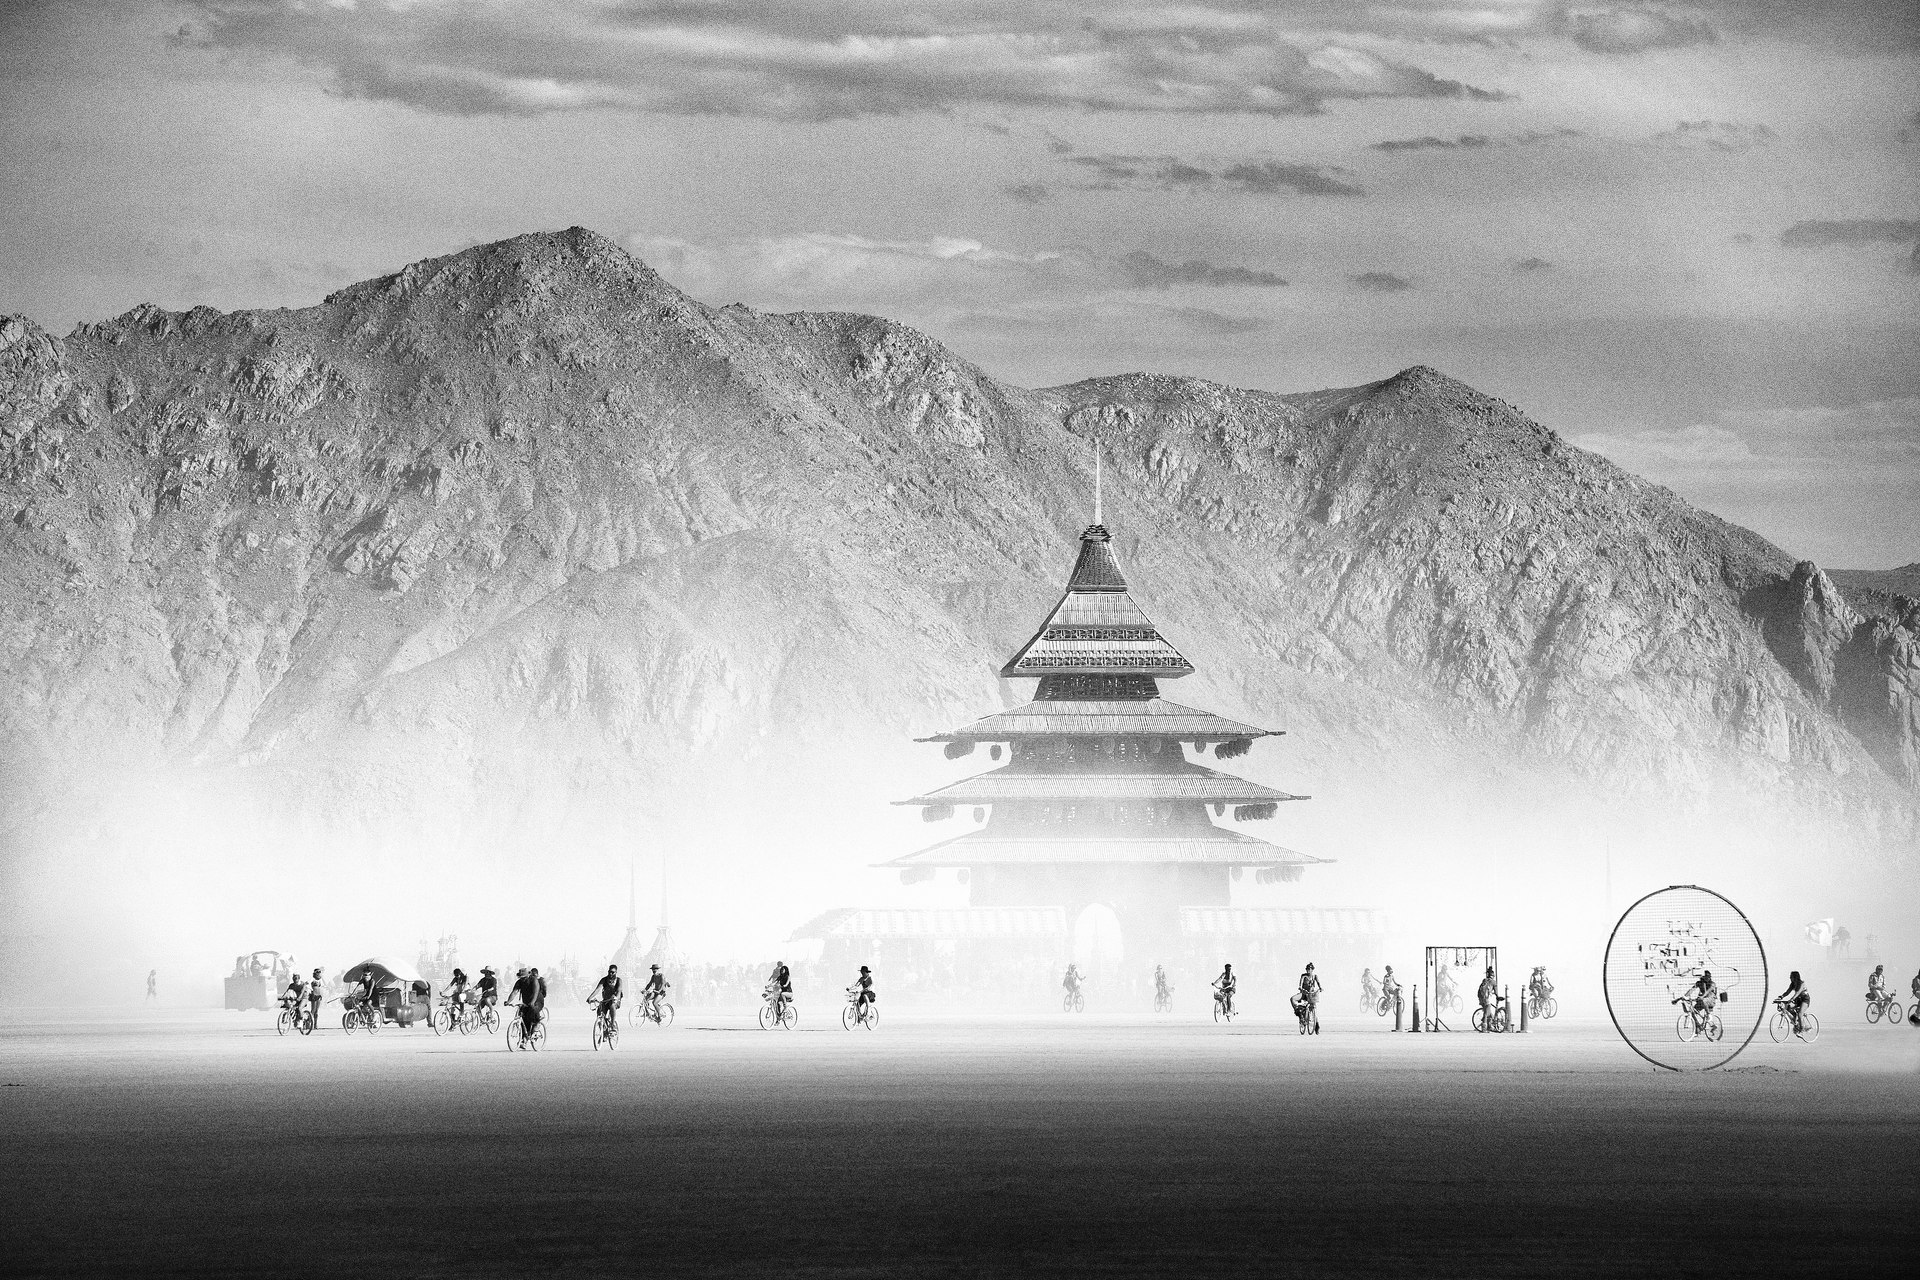 The Temple (© Jean-Luc Grossmann)